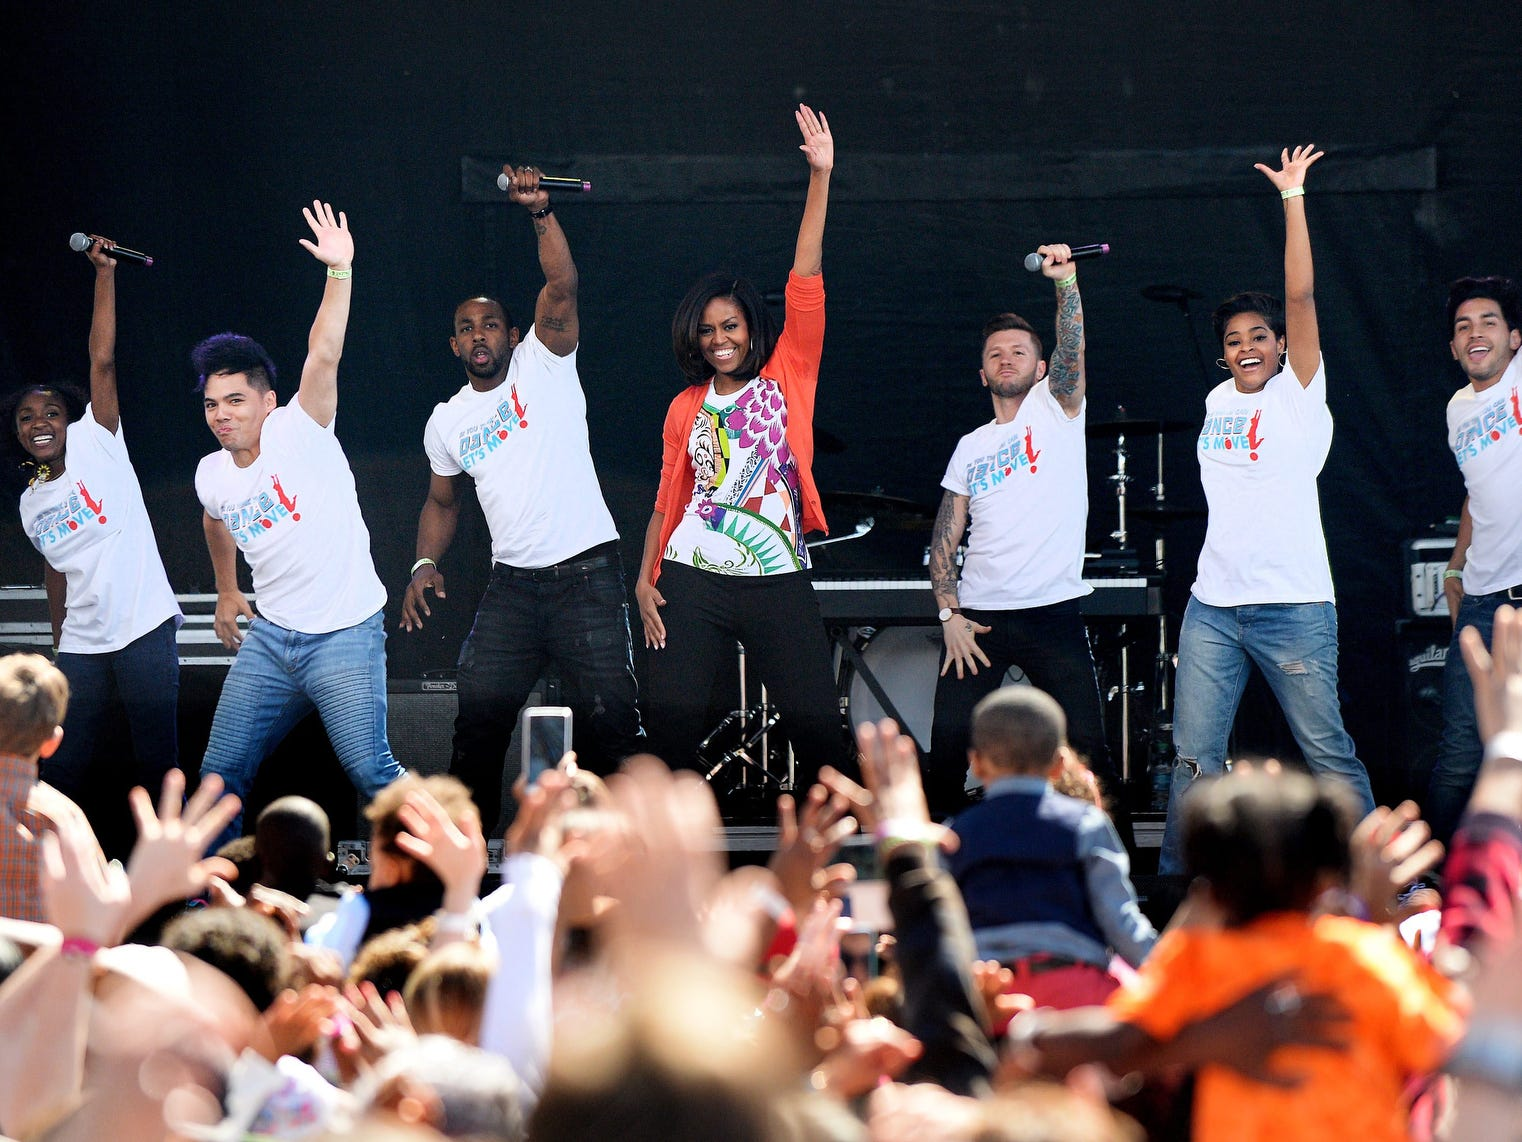 """epa04693774 US First Lady Michelle Obama (C) dances with members of the All Stars from from the television show 'So You Can Dance' during the 137th annual White House Easter Egg Roll on the South Lawn of the White House in Washingon DC, USA, 06 April 2015. The Easter egg roll falls on the fifth anniversary of Michelle Obama's Let's Move initiative to combat childhood obesity. The first lady asked Americans of all ages to """"give me five ways they are leading a healthier life,"""" and to participate on Twitter and other social media websites by using #gimmefive.  EPA/Olivier Douliery / POOL"""